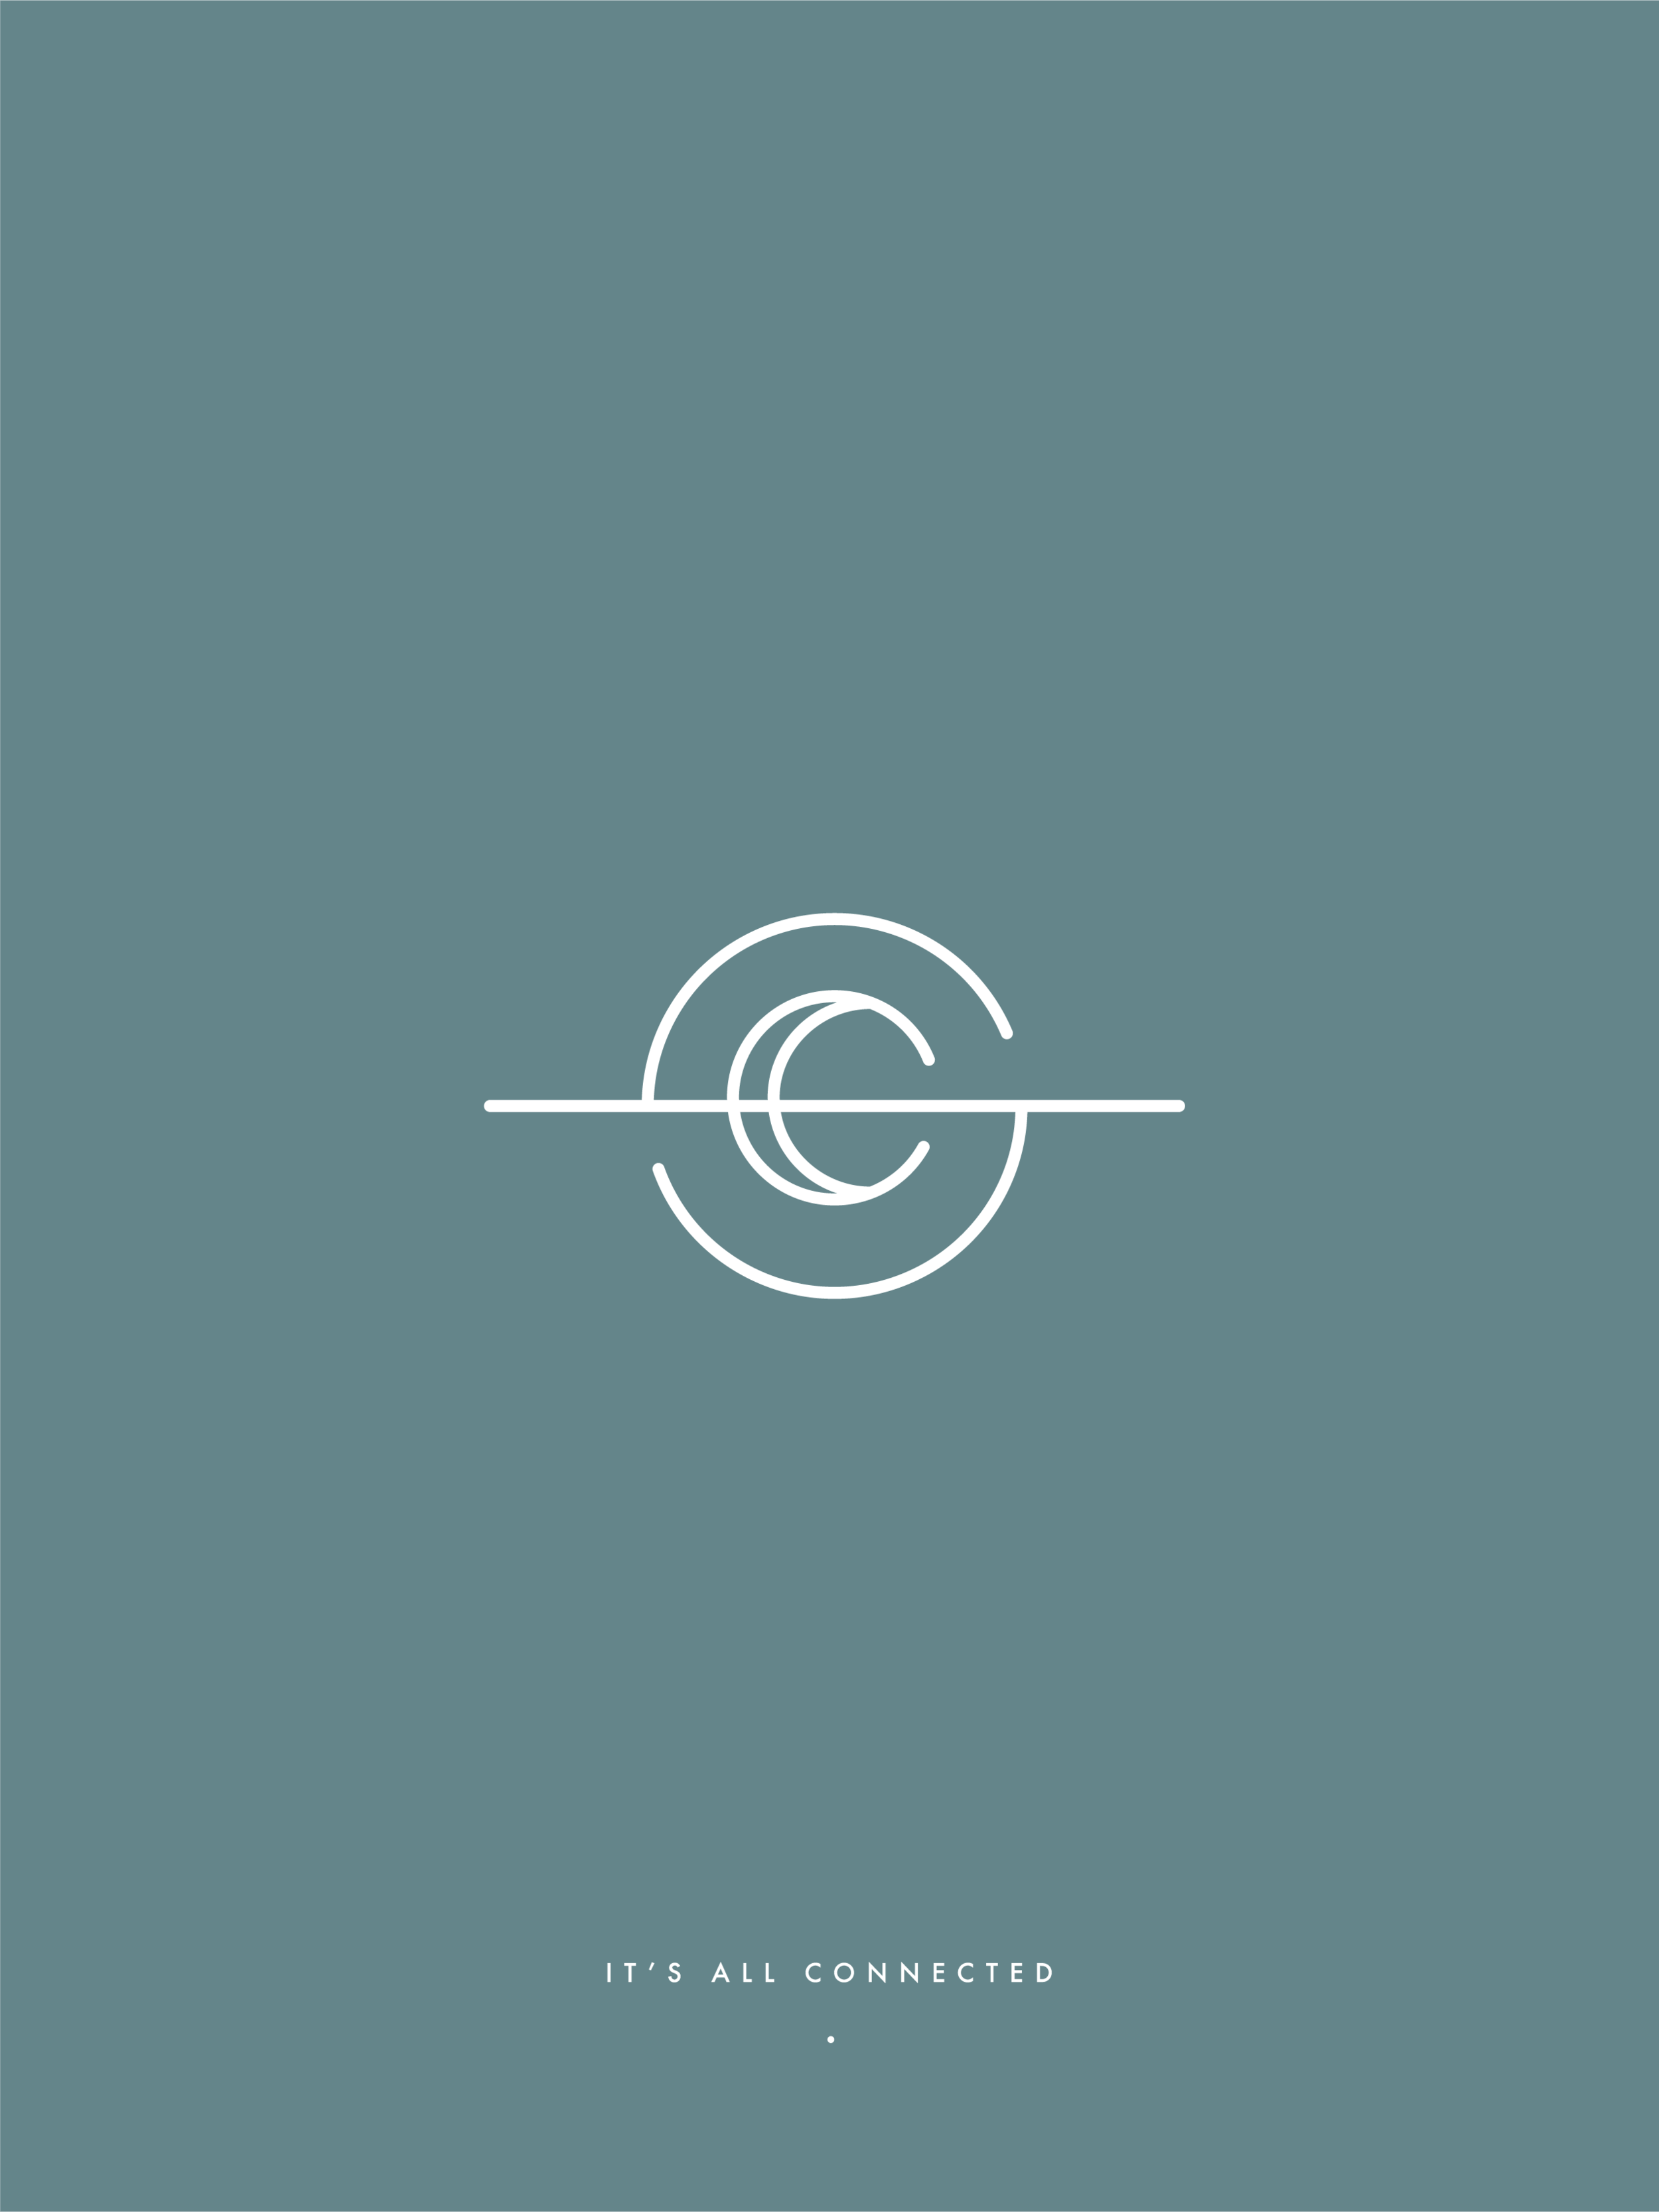 Small Circle icon - January Made Design